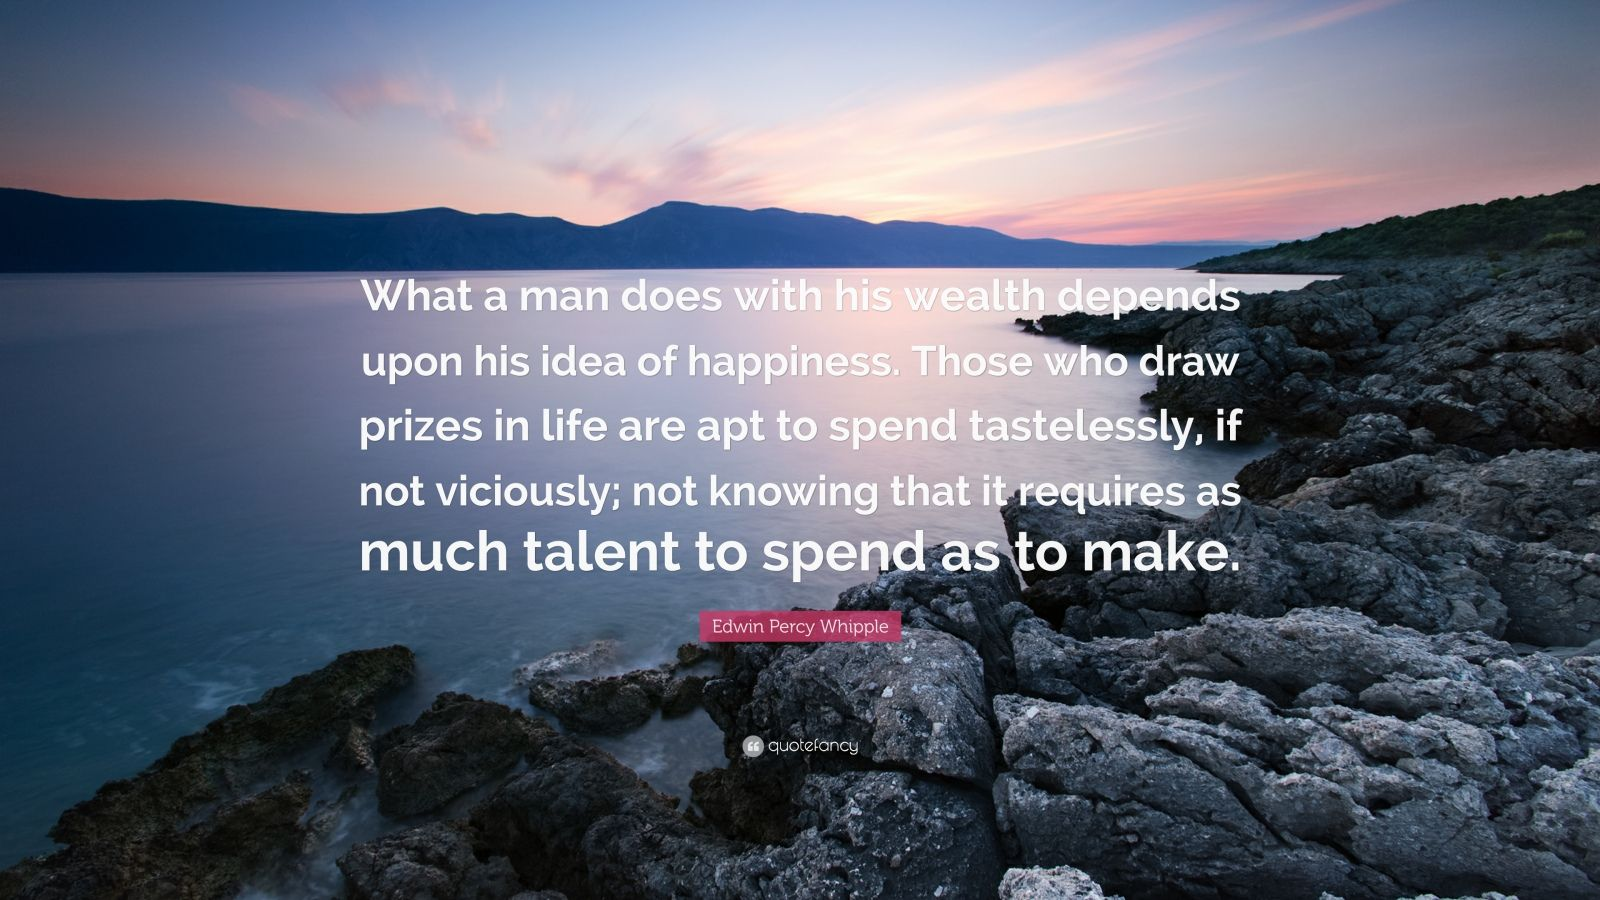 "Edwin Percy Whipple Quote: ""What a man does with his wealth depends upon his idea of happiness. Those who draw prizes in life are apt to spend tastelessly, if not viciously; not knowing that it requires as much talent to spend as to make."""